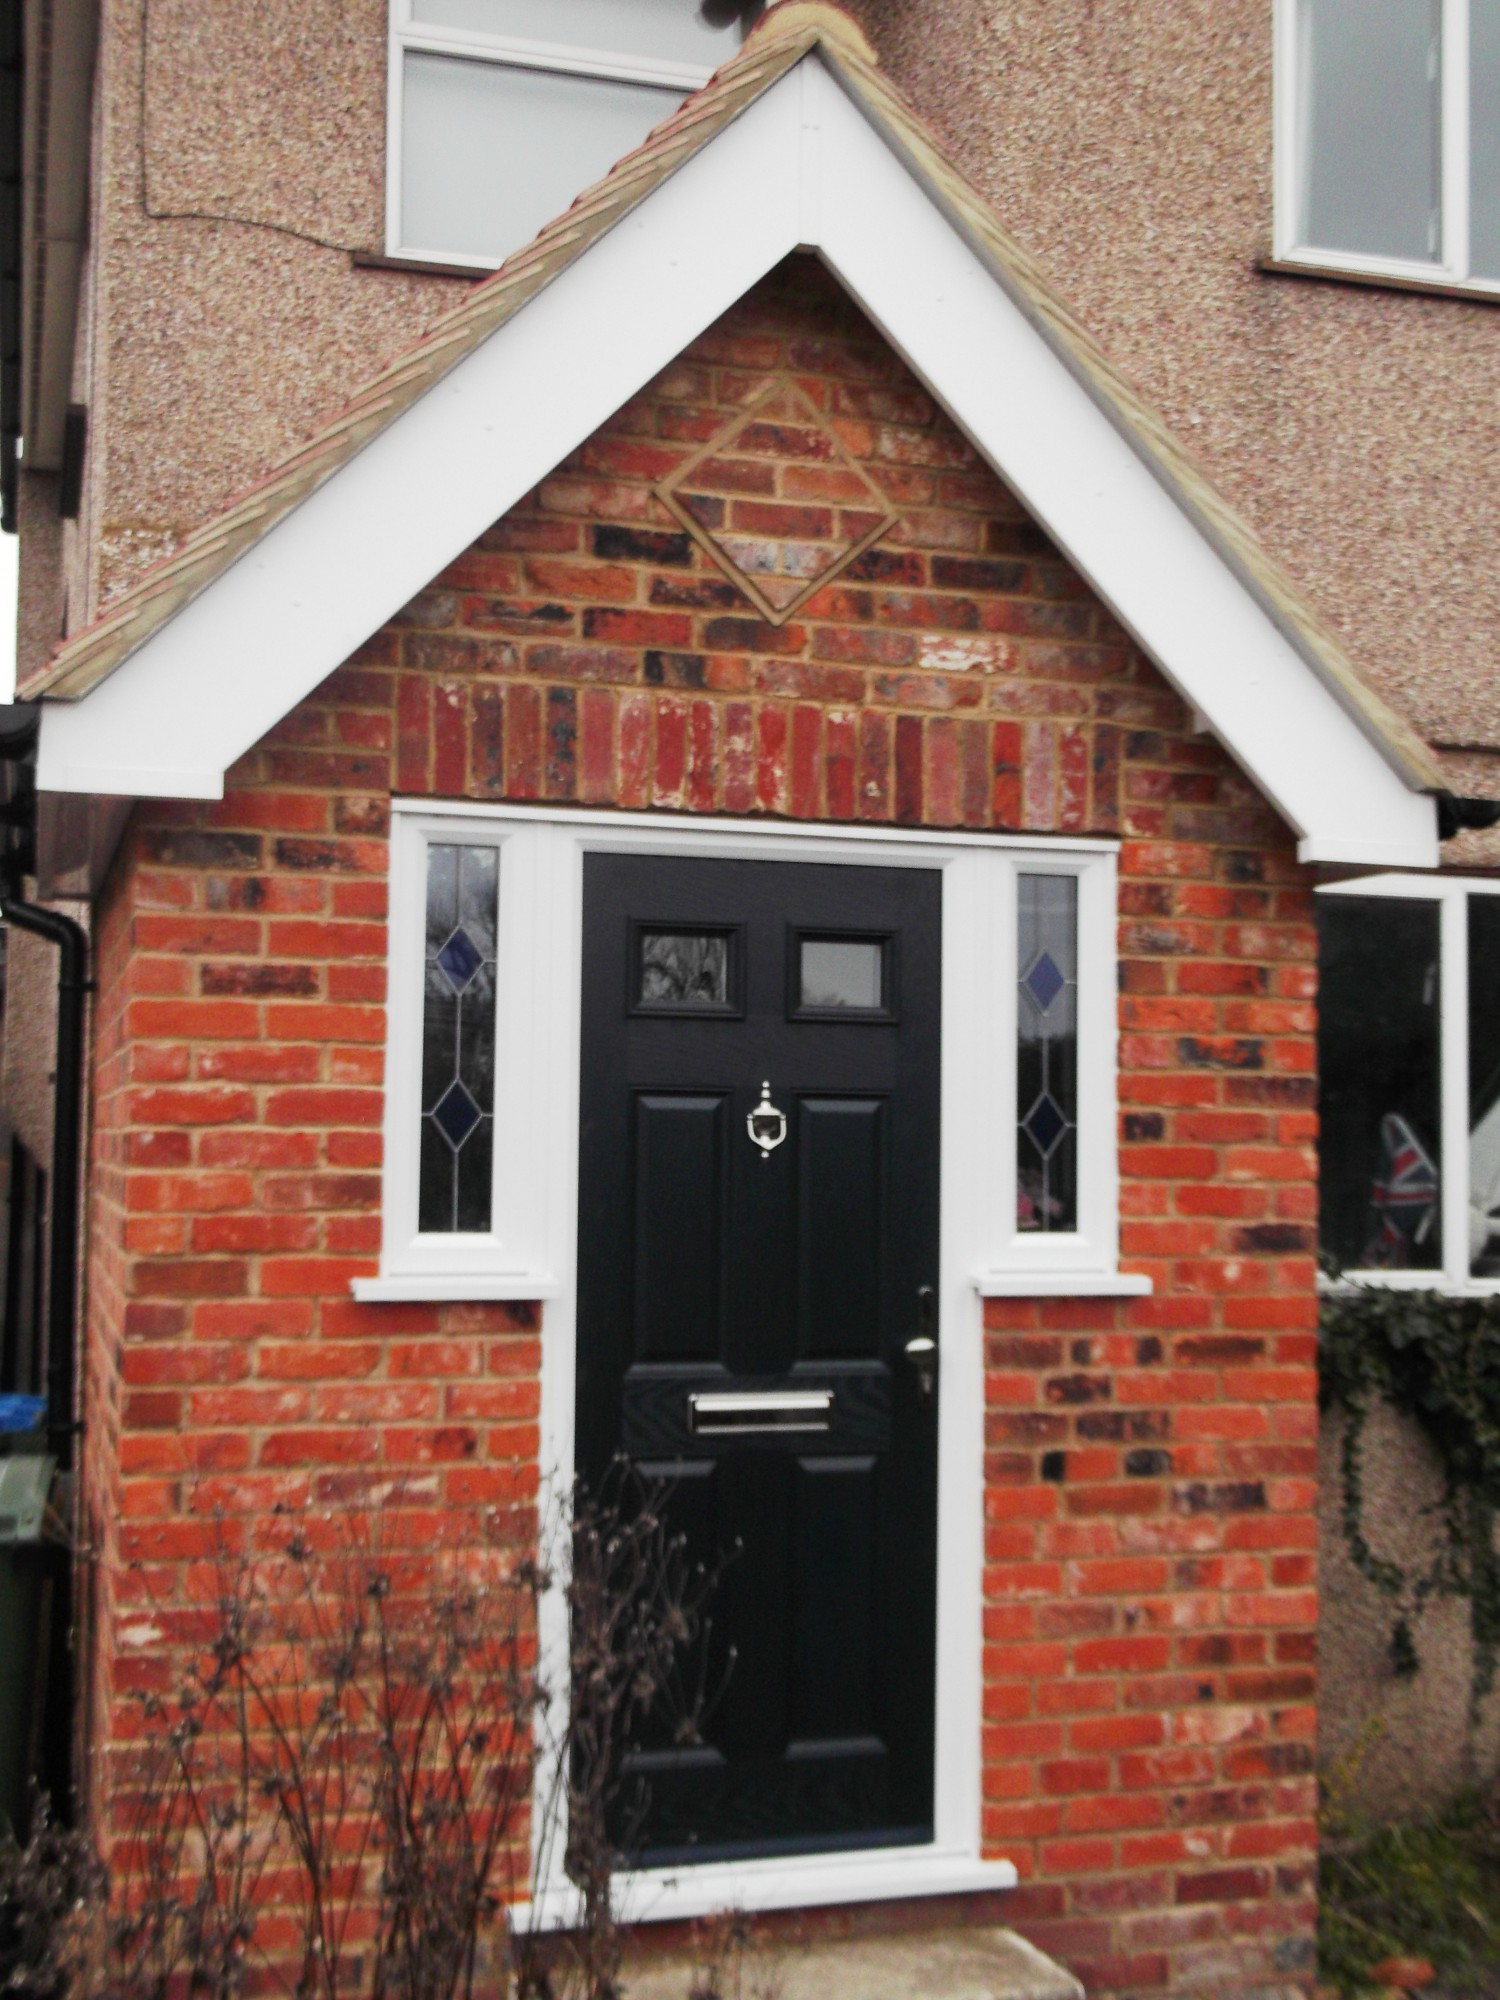 Porch front door with small decorative window panels